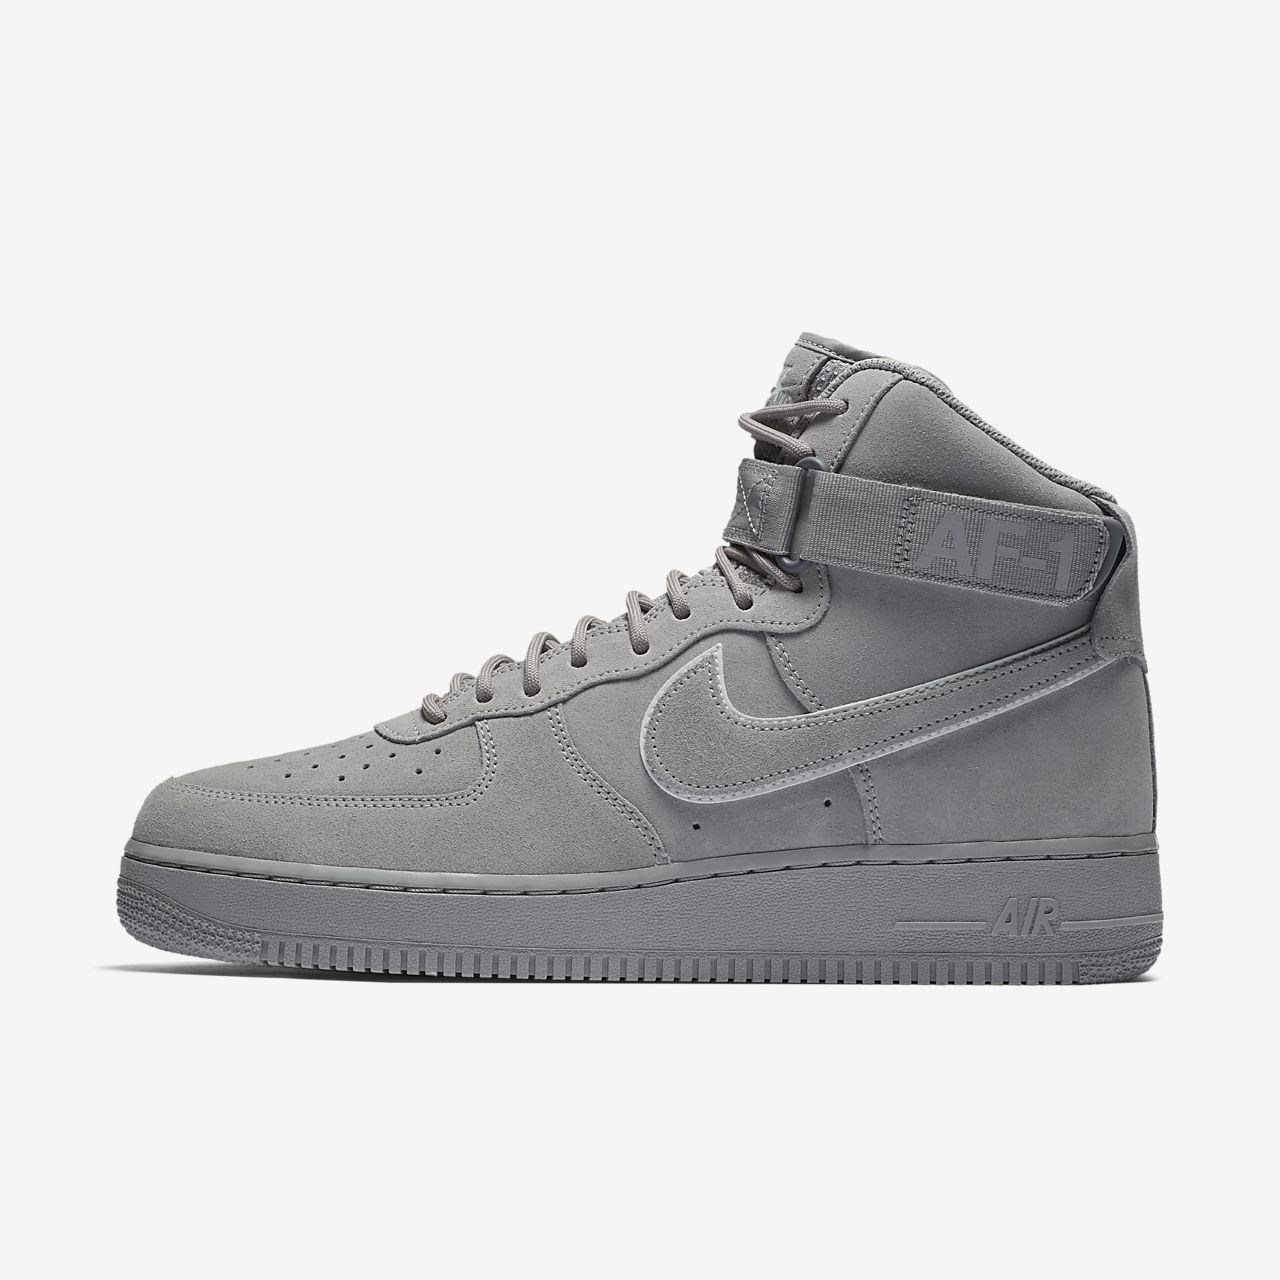 Nike SF Air Force 1 Mid Men's Lifestyle Shoes Grey rK7109I